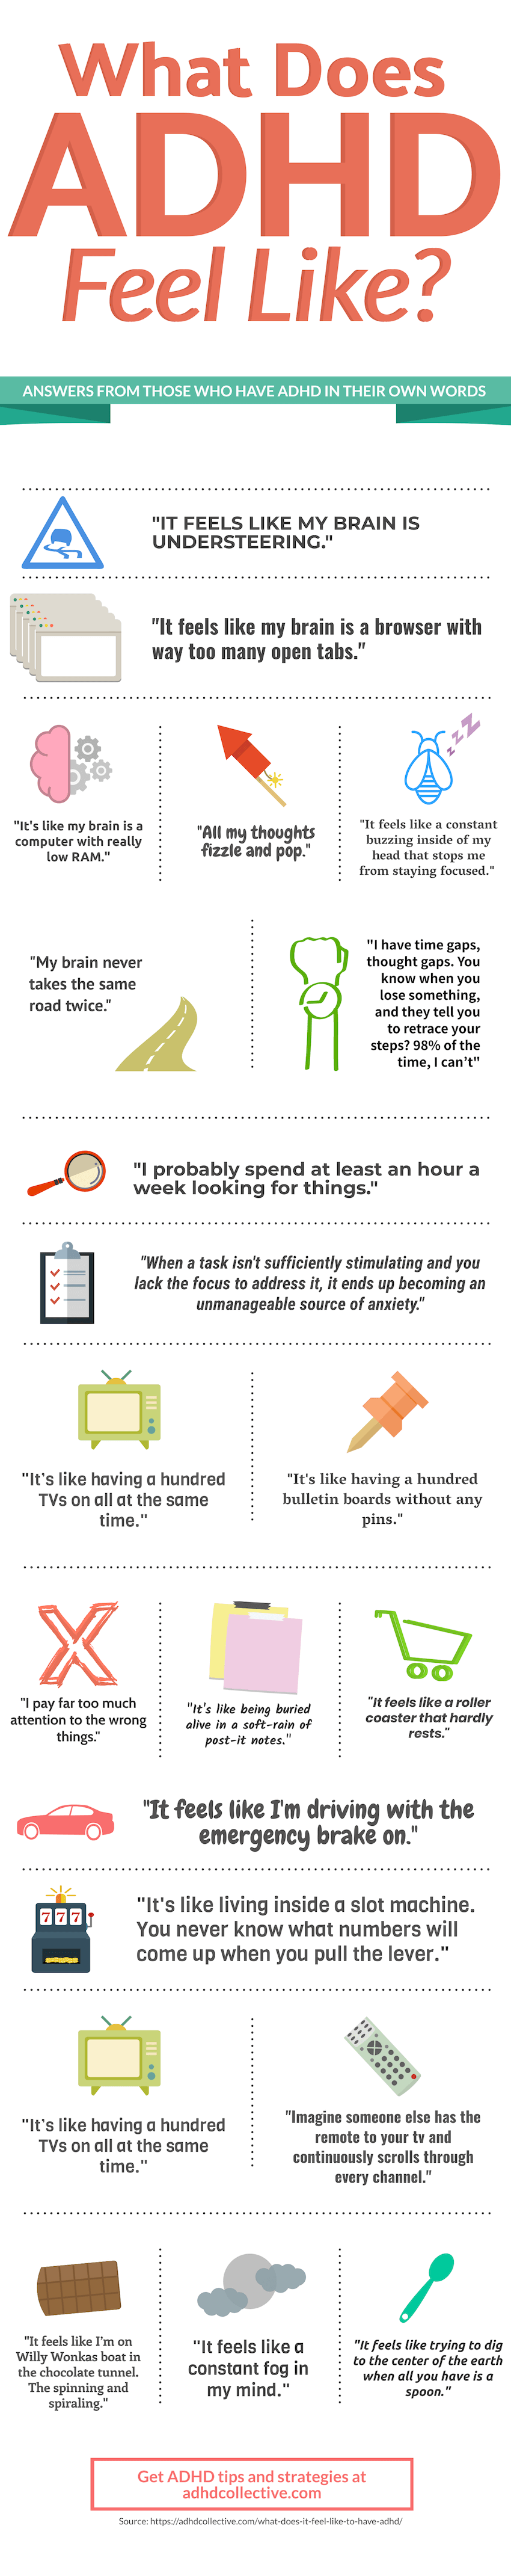 What Does ADHD Feel Like Infographic